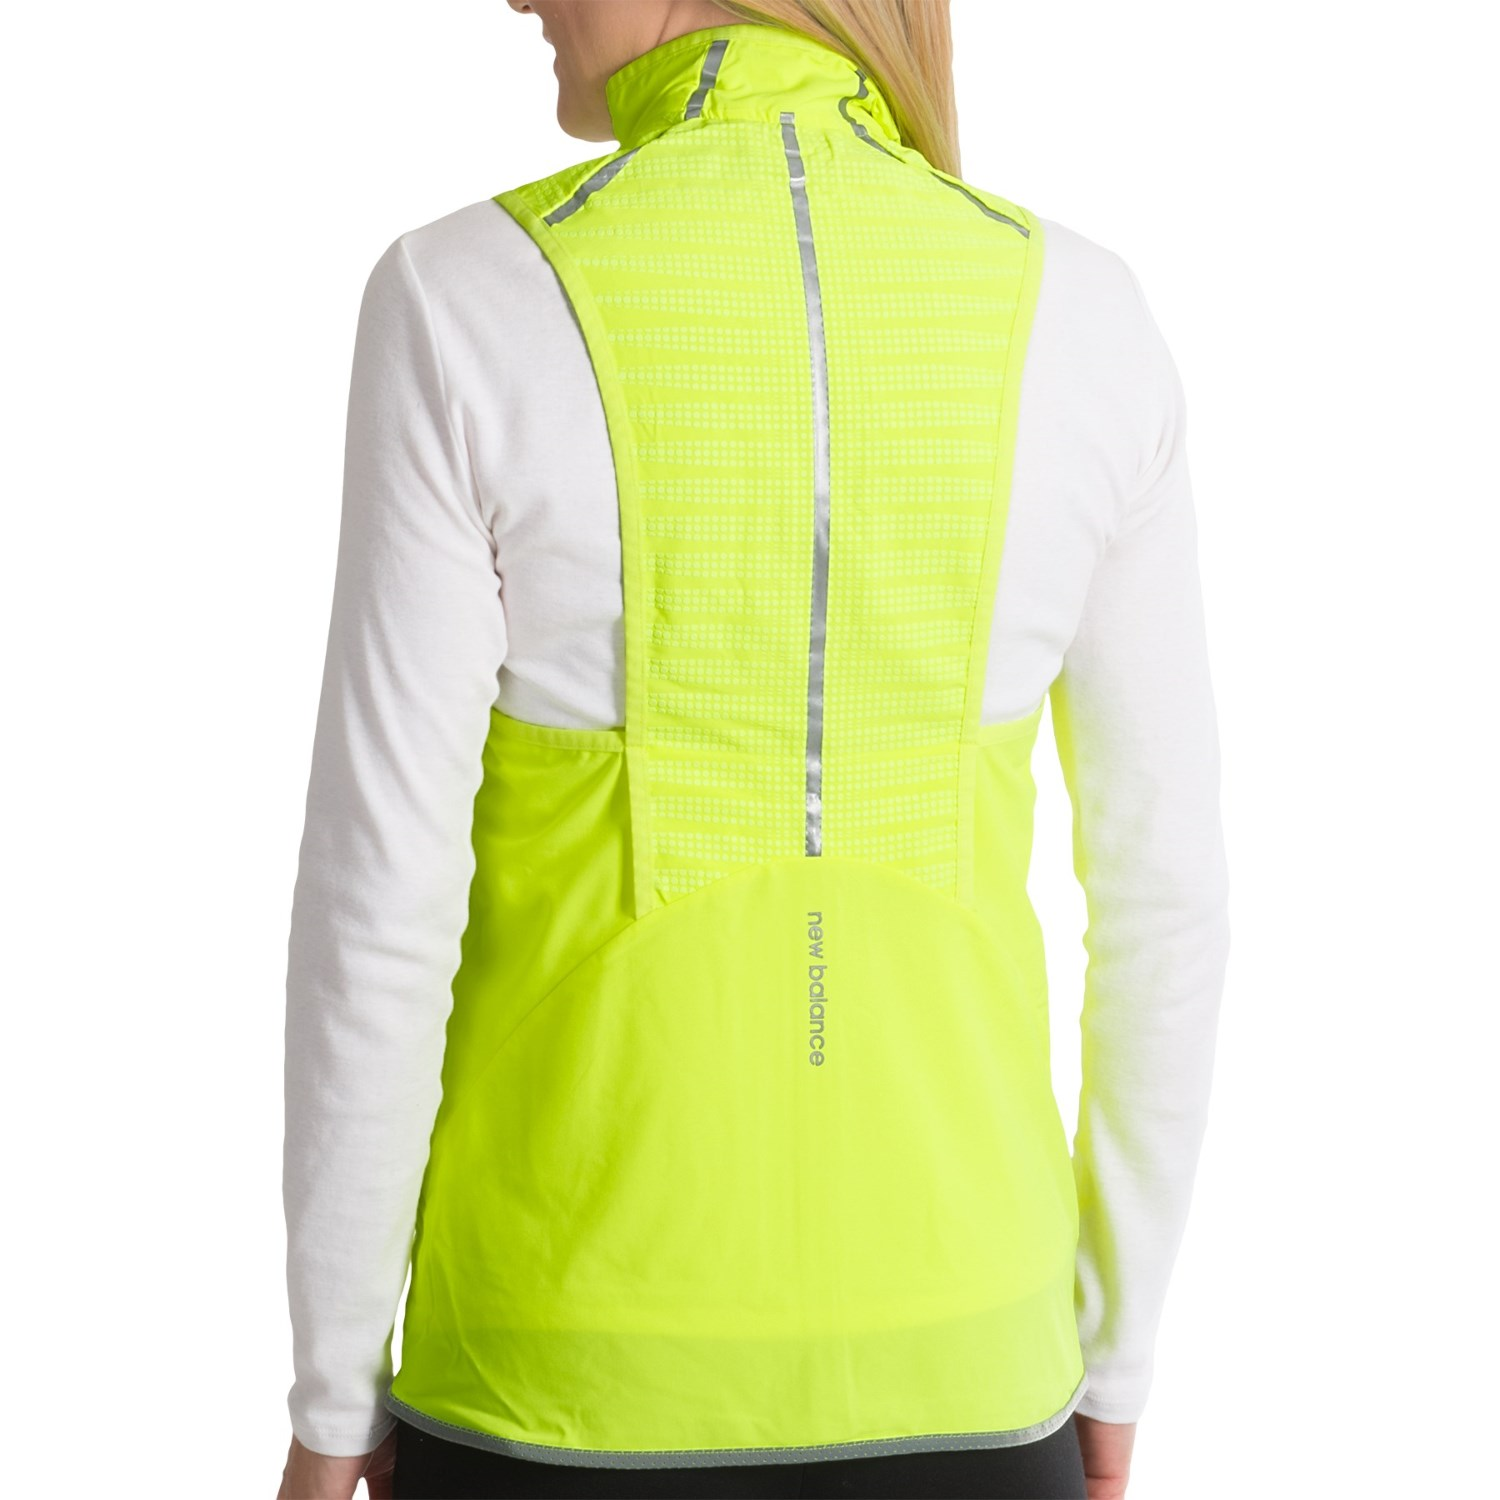 Improve your run with mens and womens running vests and tank tops. Shop from top brands such as Ronhill, Adidas, Nike and Mizuno. Quality running wear with the latest moisture wicking technology. Shop now and get free UK delivery on orders over £ Free UK .